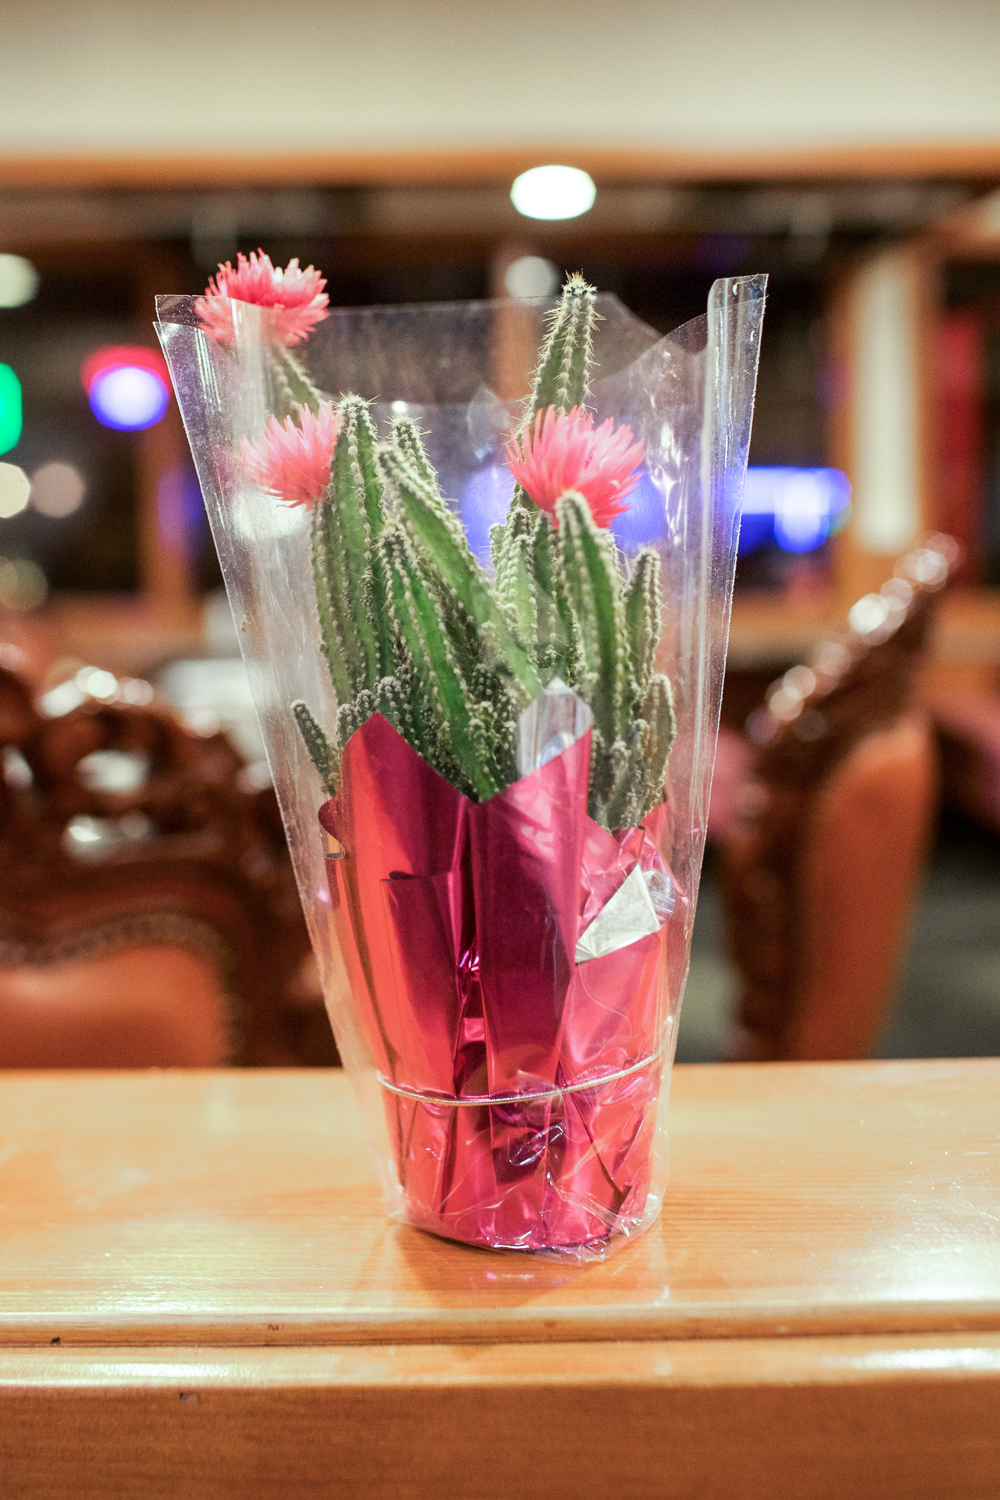 These cactus are scattered through the restaurant. Random and cute.